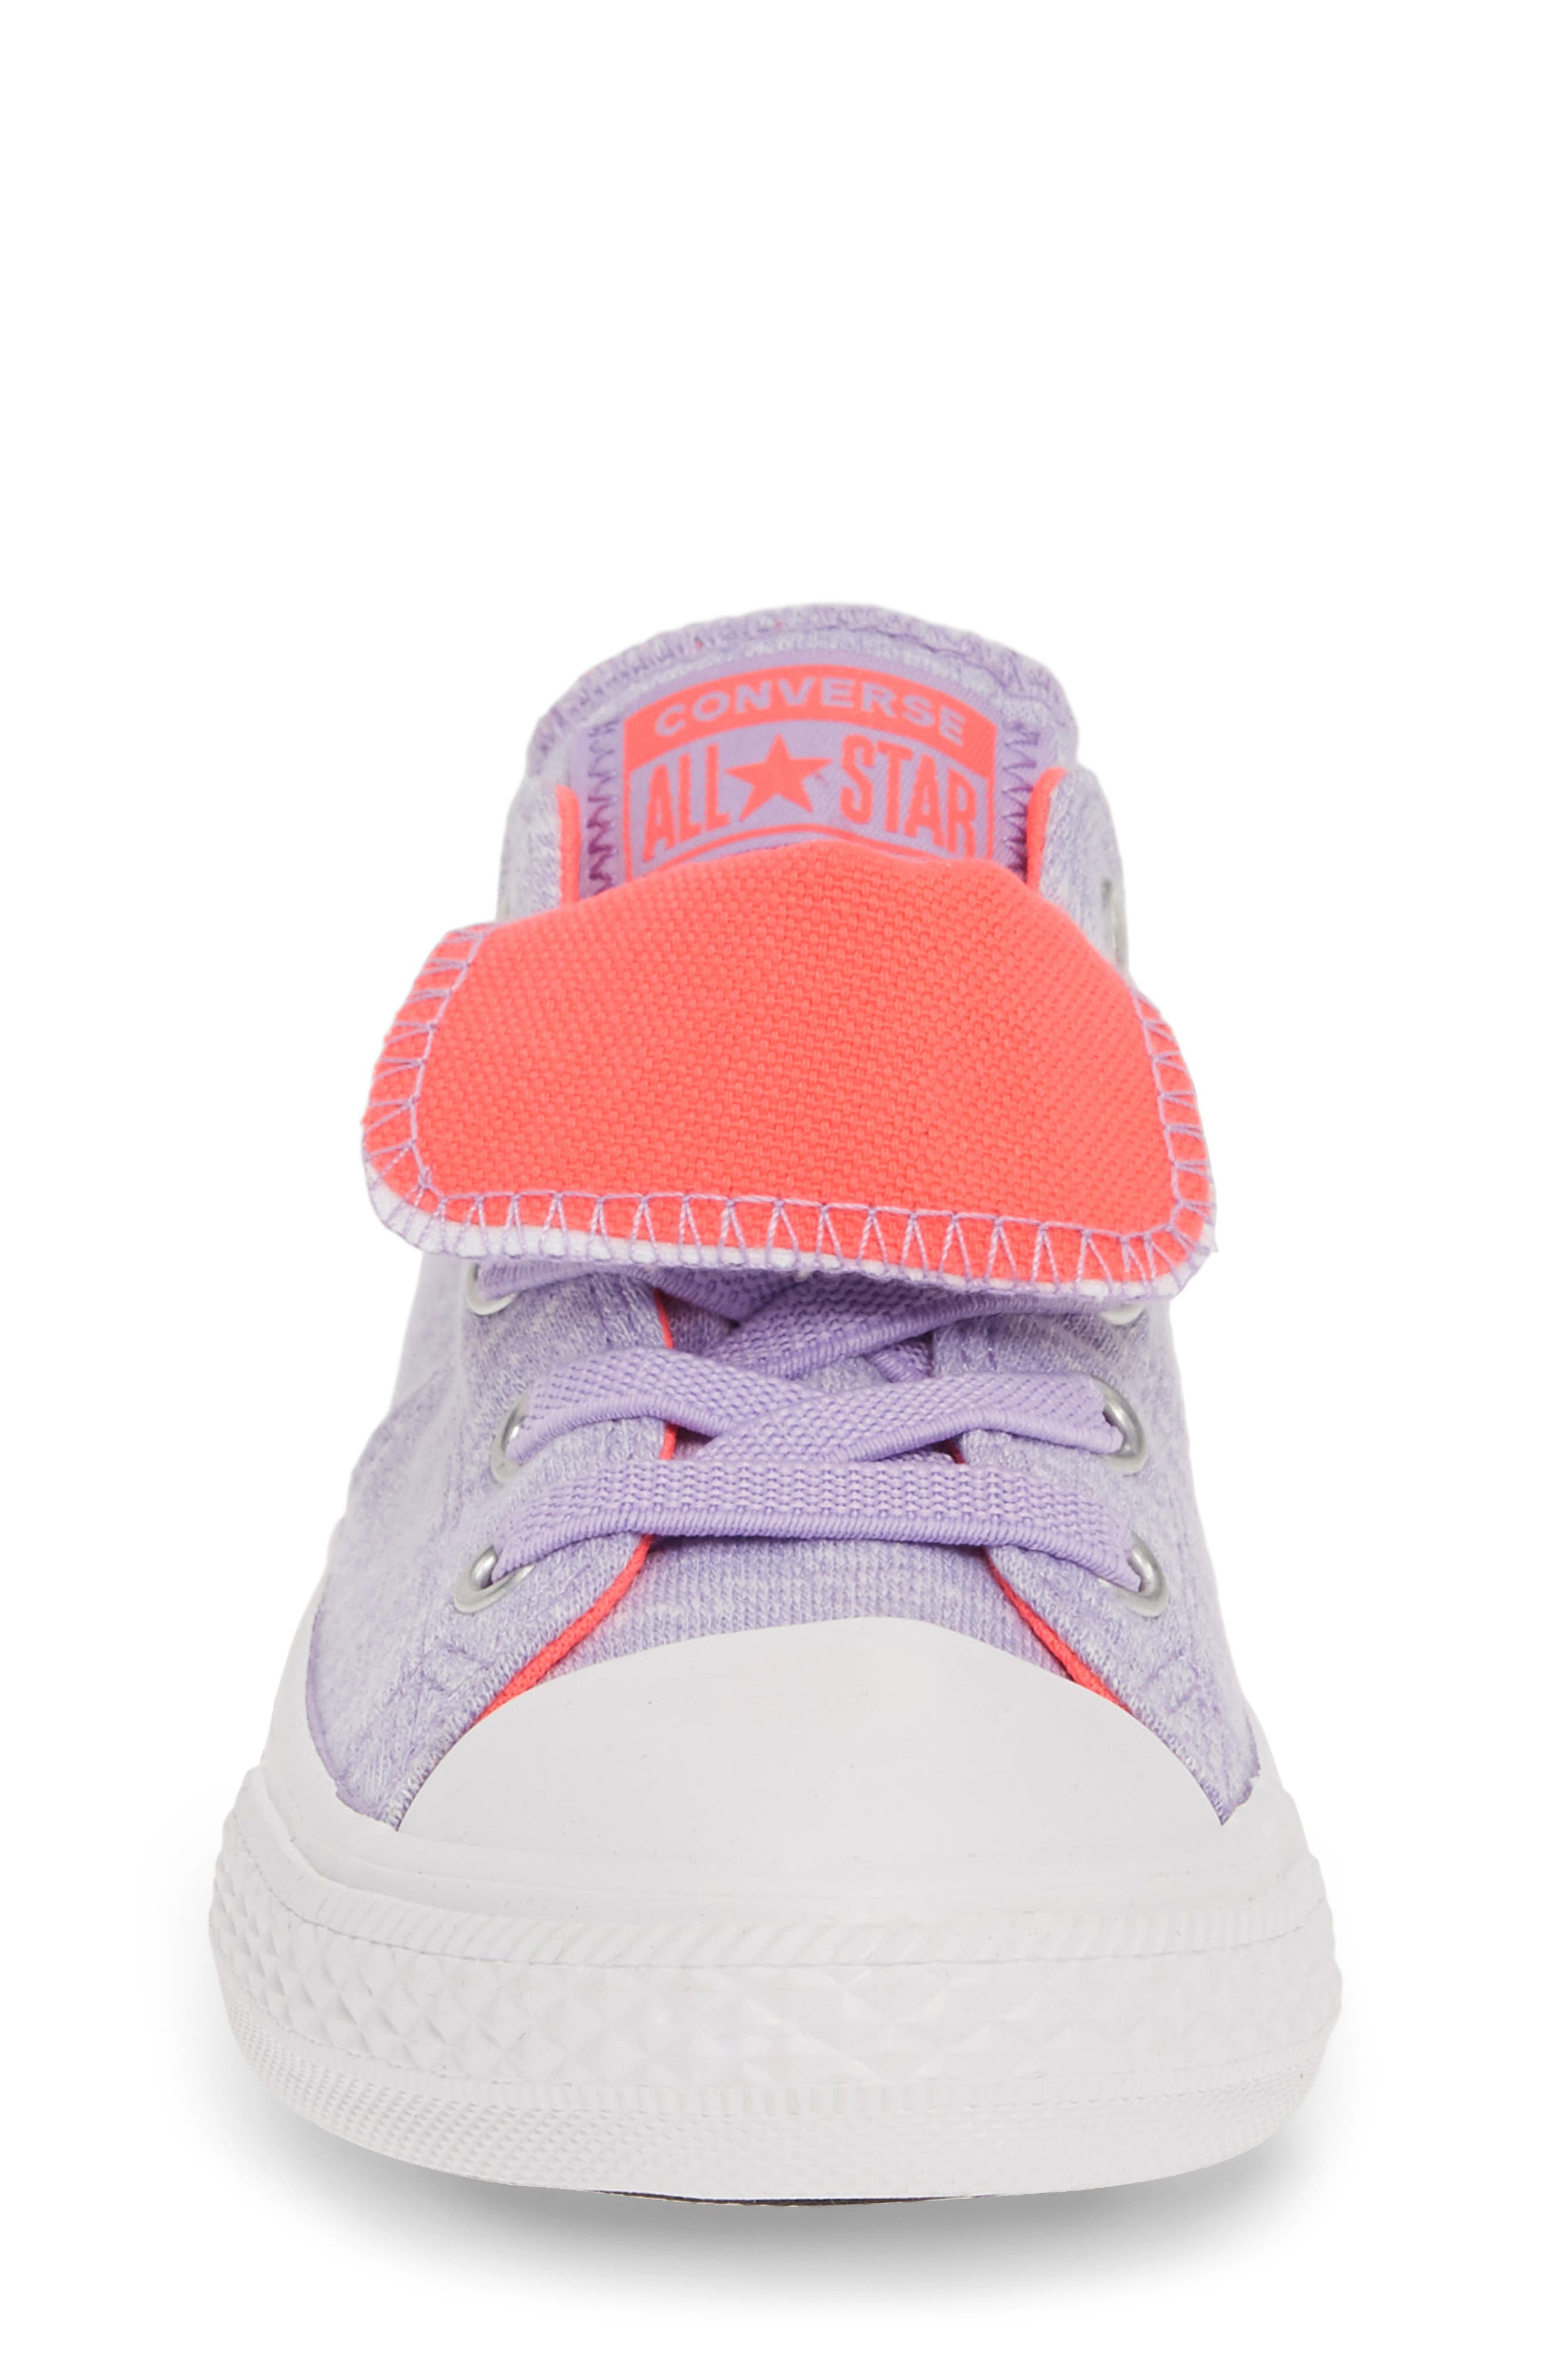 ,                             Chuck Taylor<sup>®</sup> All Star<sup>®</sup> Maddie Double Tongue Sneaker,                             Alternate thumbnail 28, color,                             506